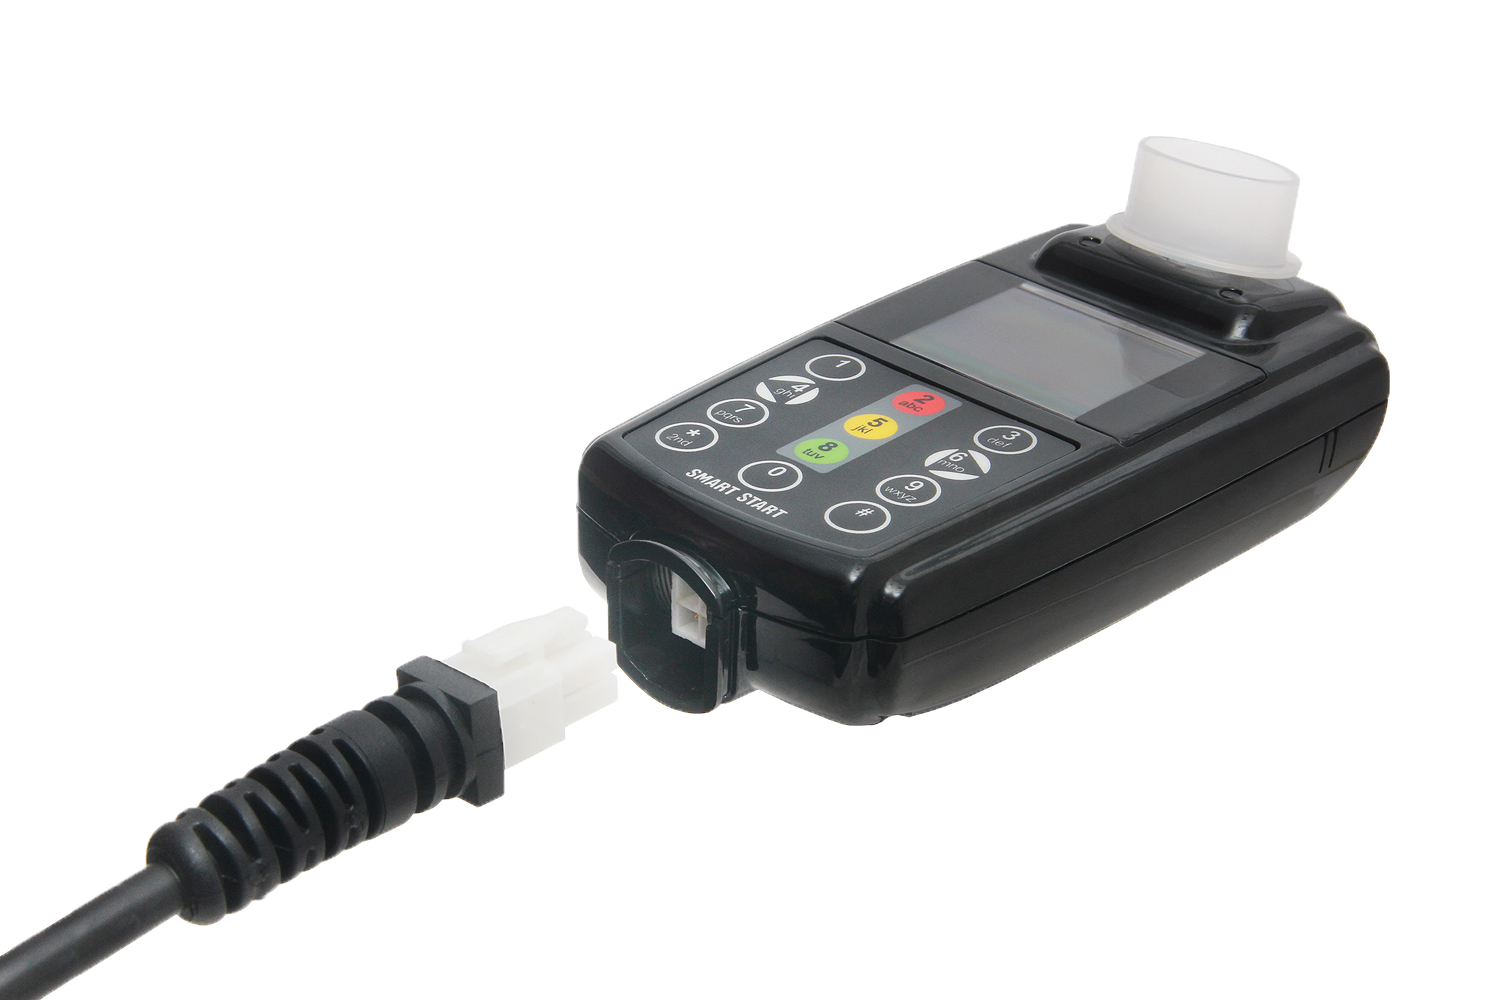 Cheapest Ignition Interlock Device In Decatur  Texas